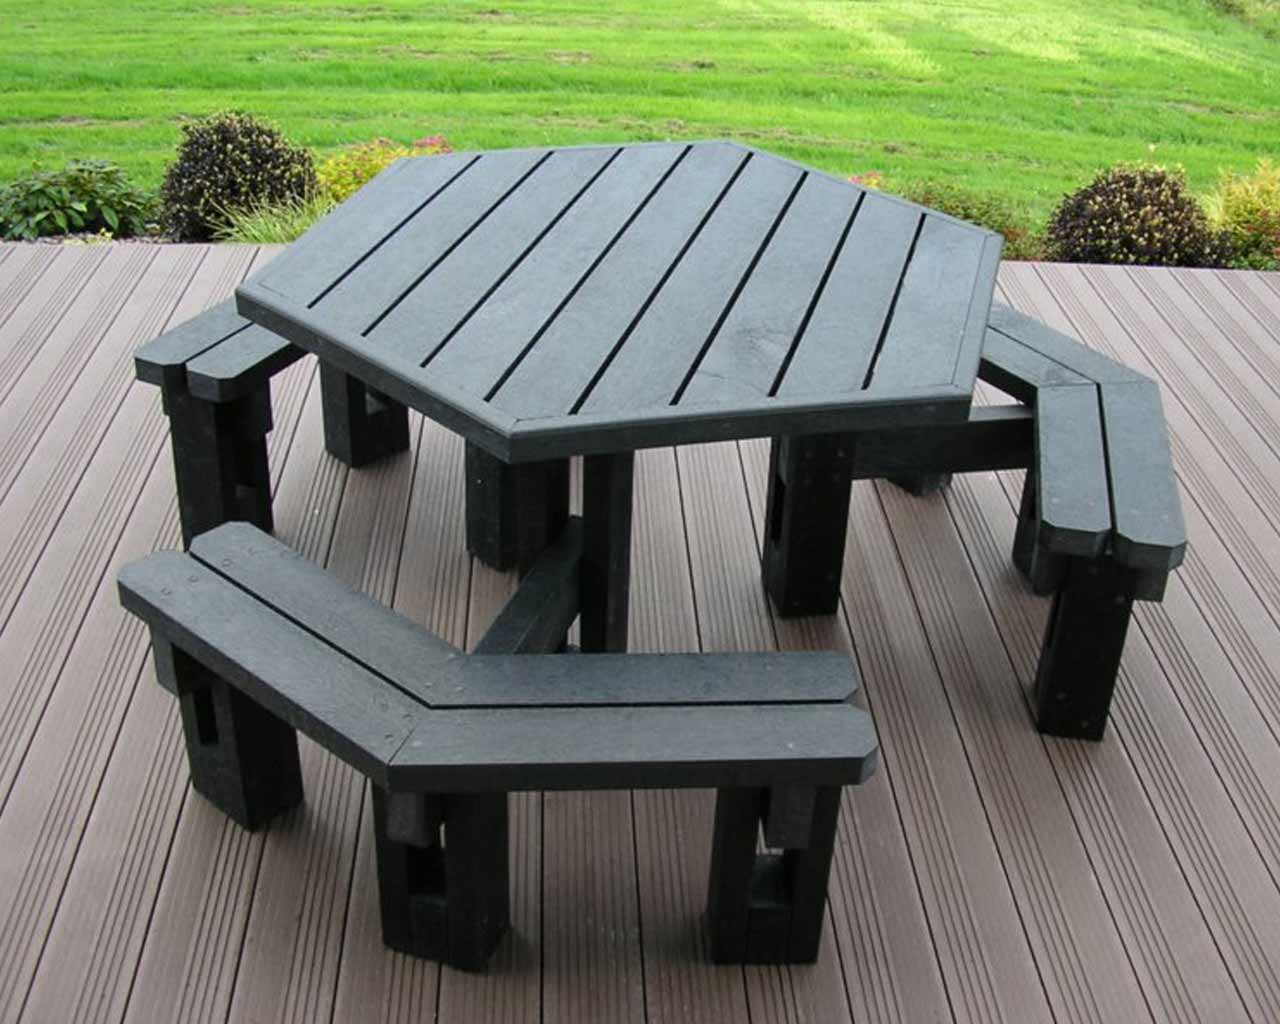 Sidedpicnictablewithoutback Murrays Recycled Plastic - 6 sided picnic table